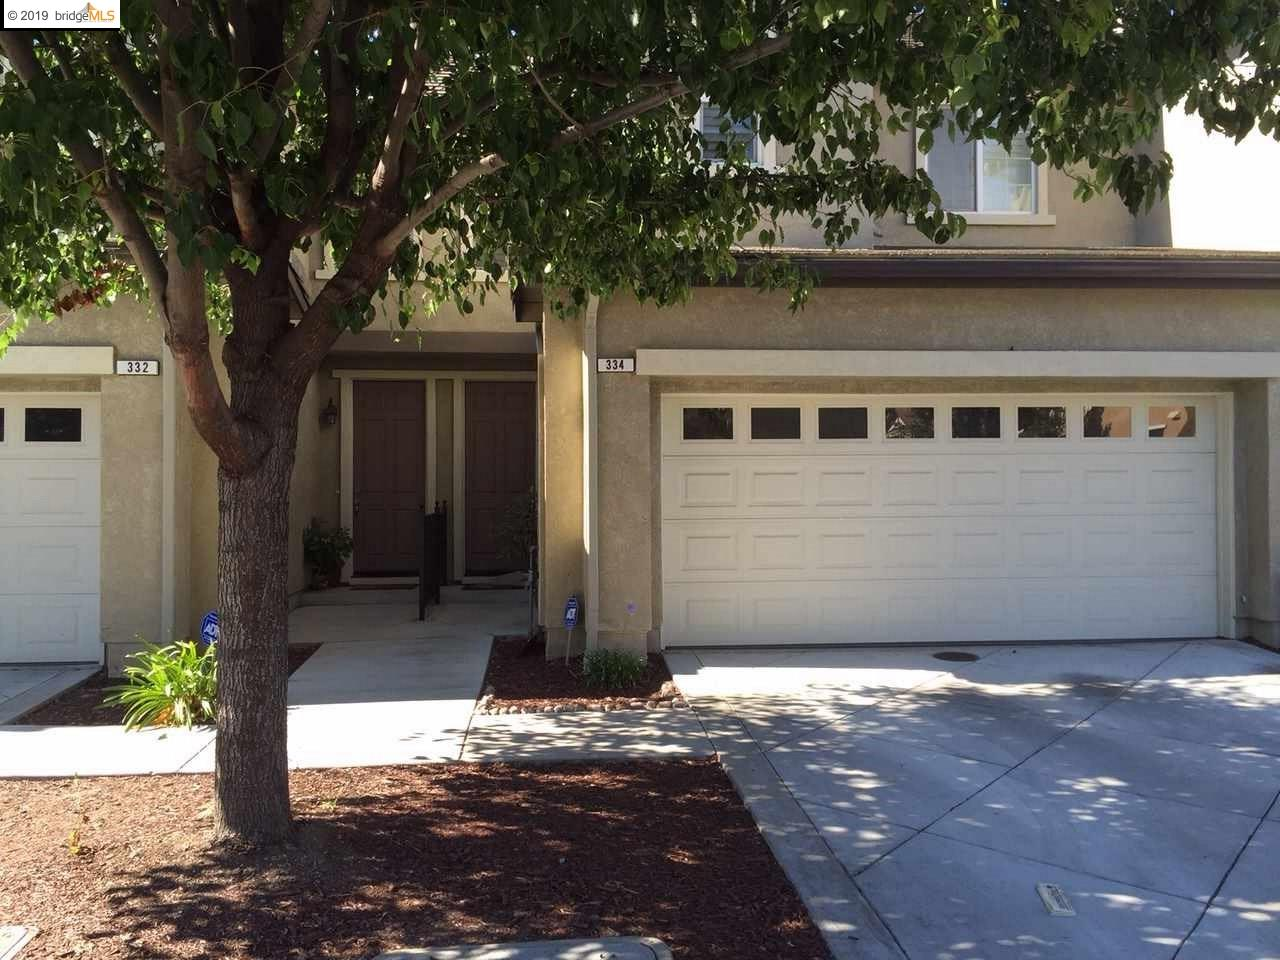 334 JEFFERSON DR, BRENTWOOD, CA 94513